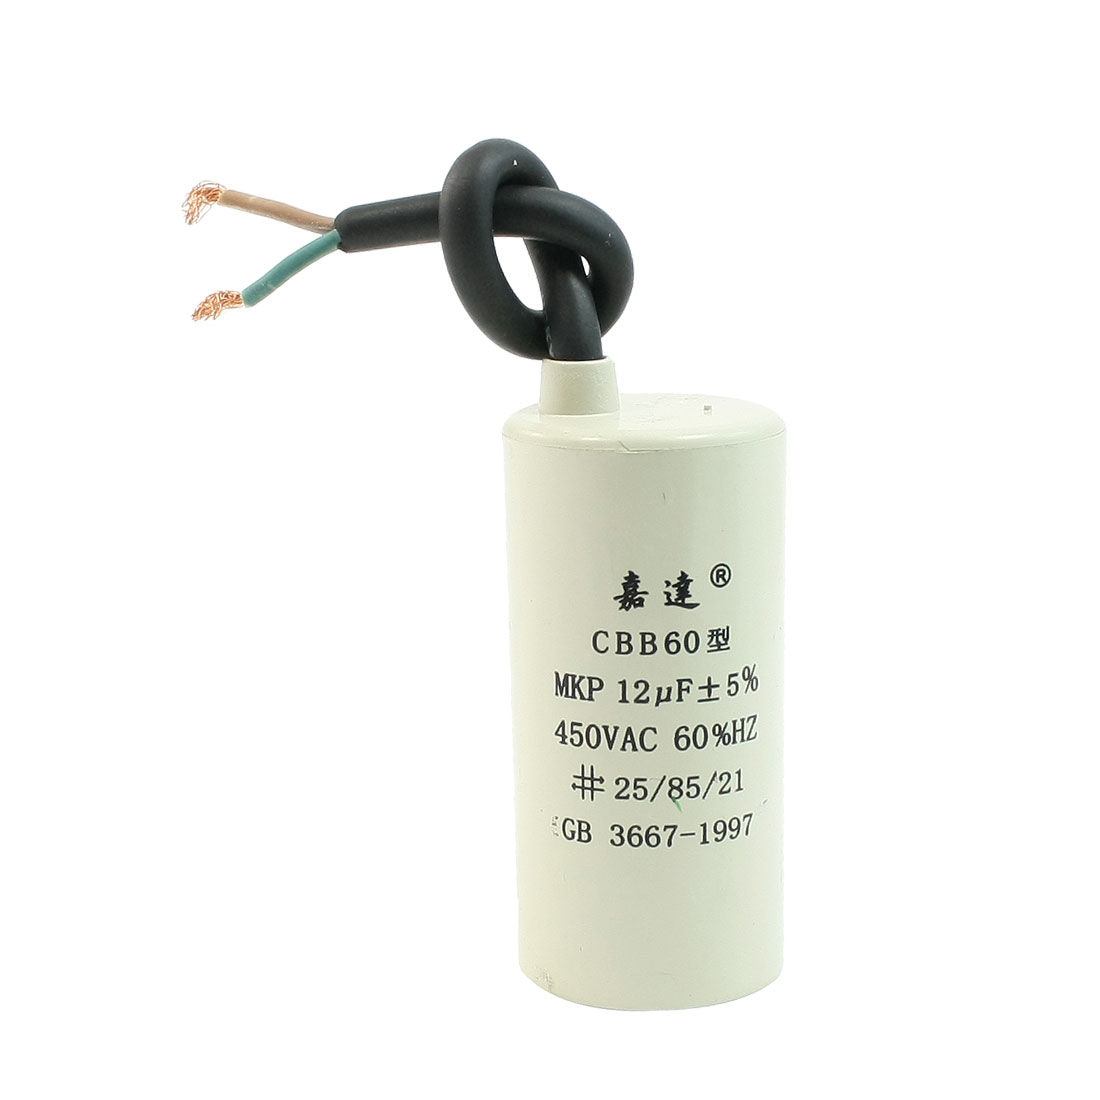 CBB60 AC 450V 12uF Cylindrical Non Polar Motor Capacitor for Washing Machine